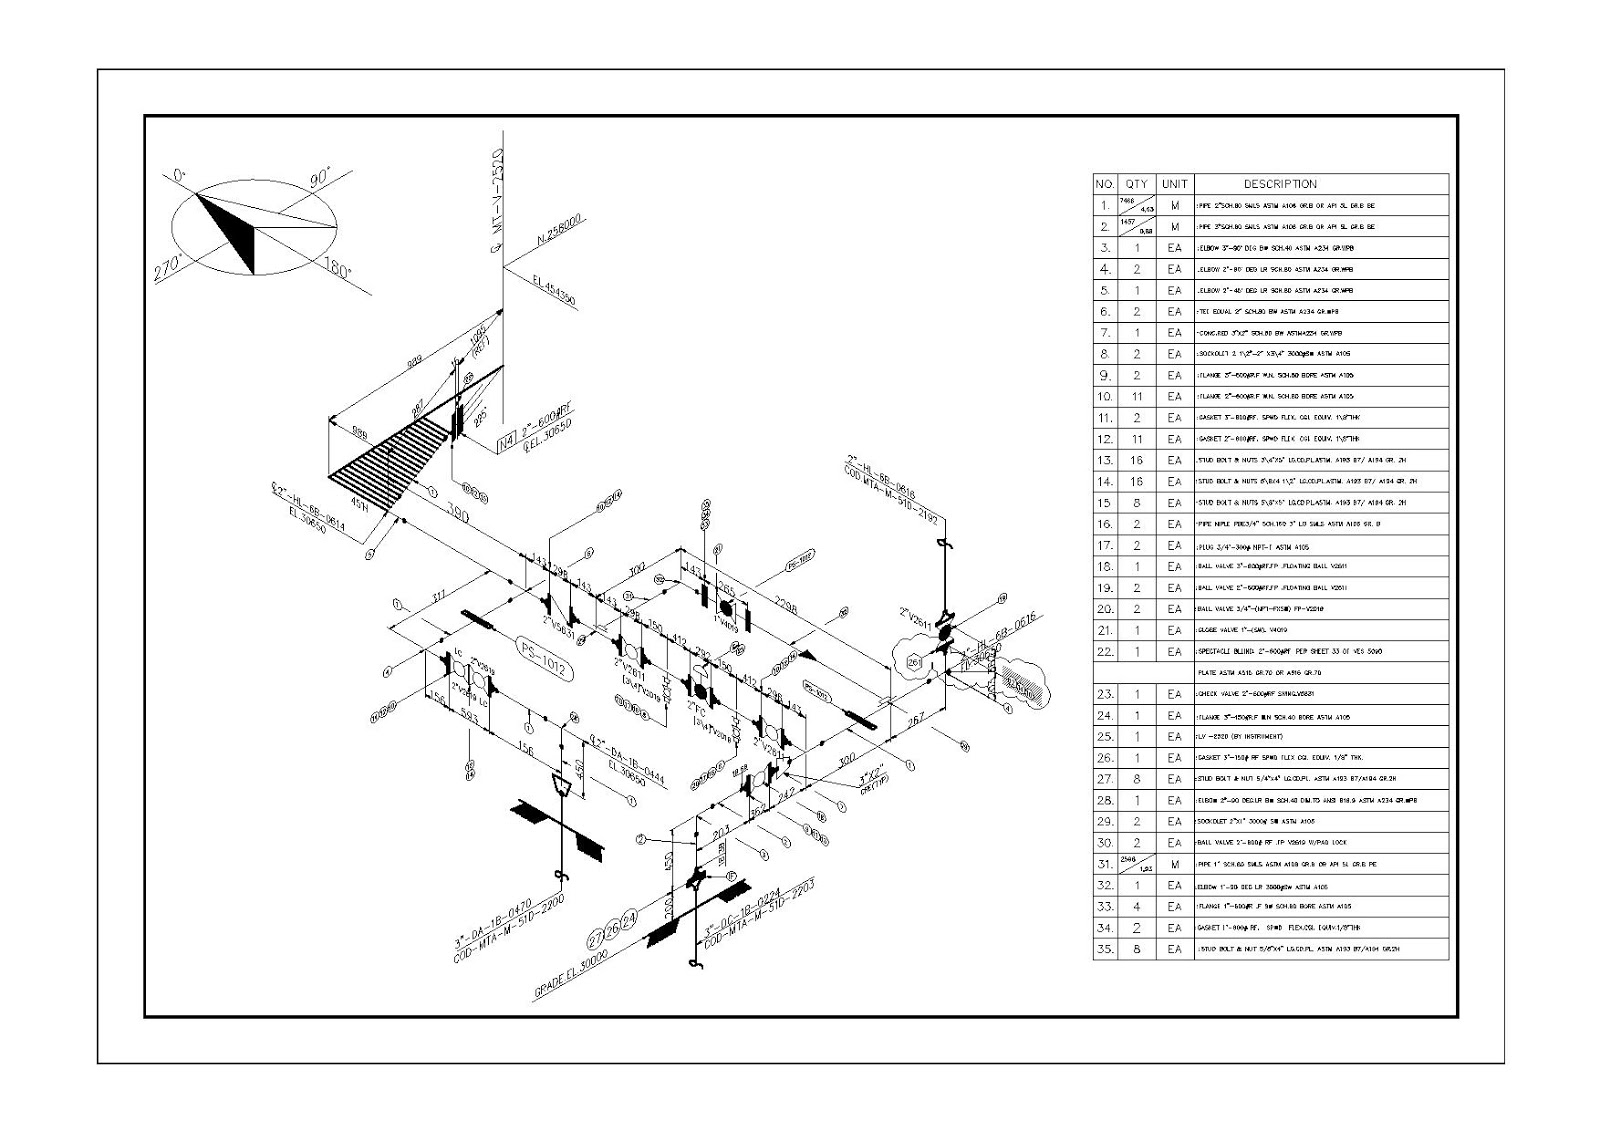 Autocad Piping And Mechanical Autocad Piping And Mechanical